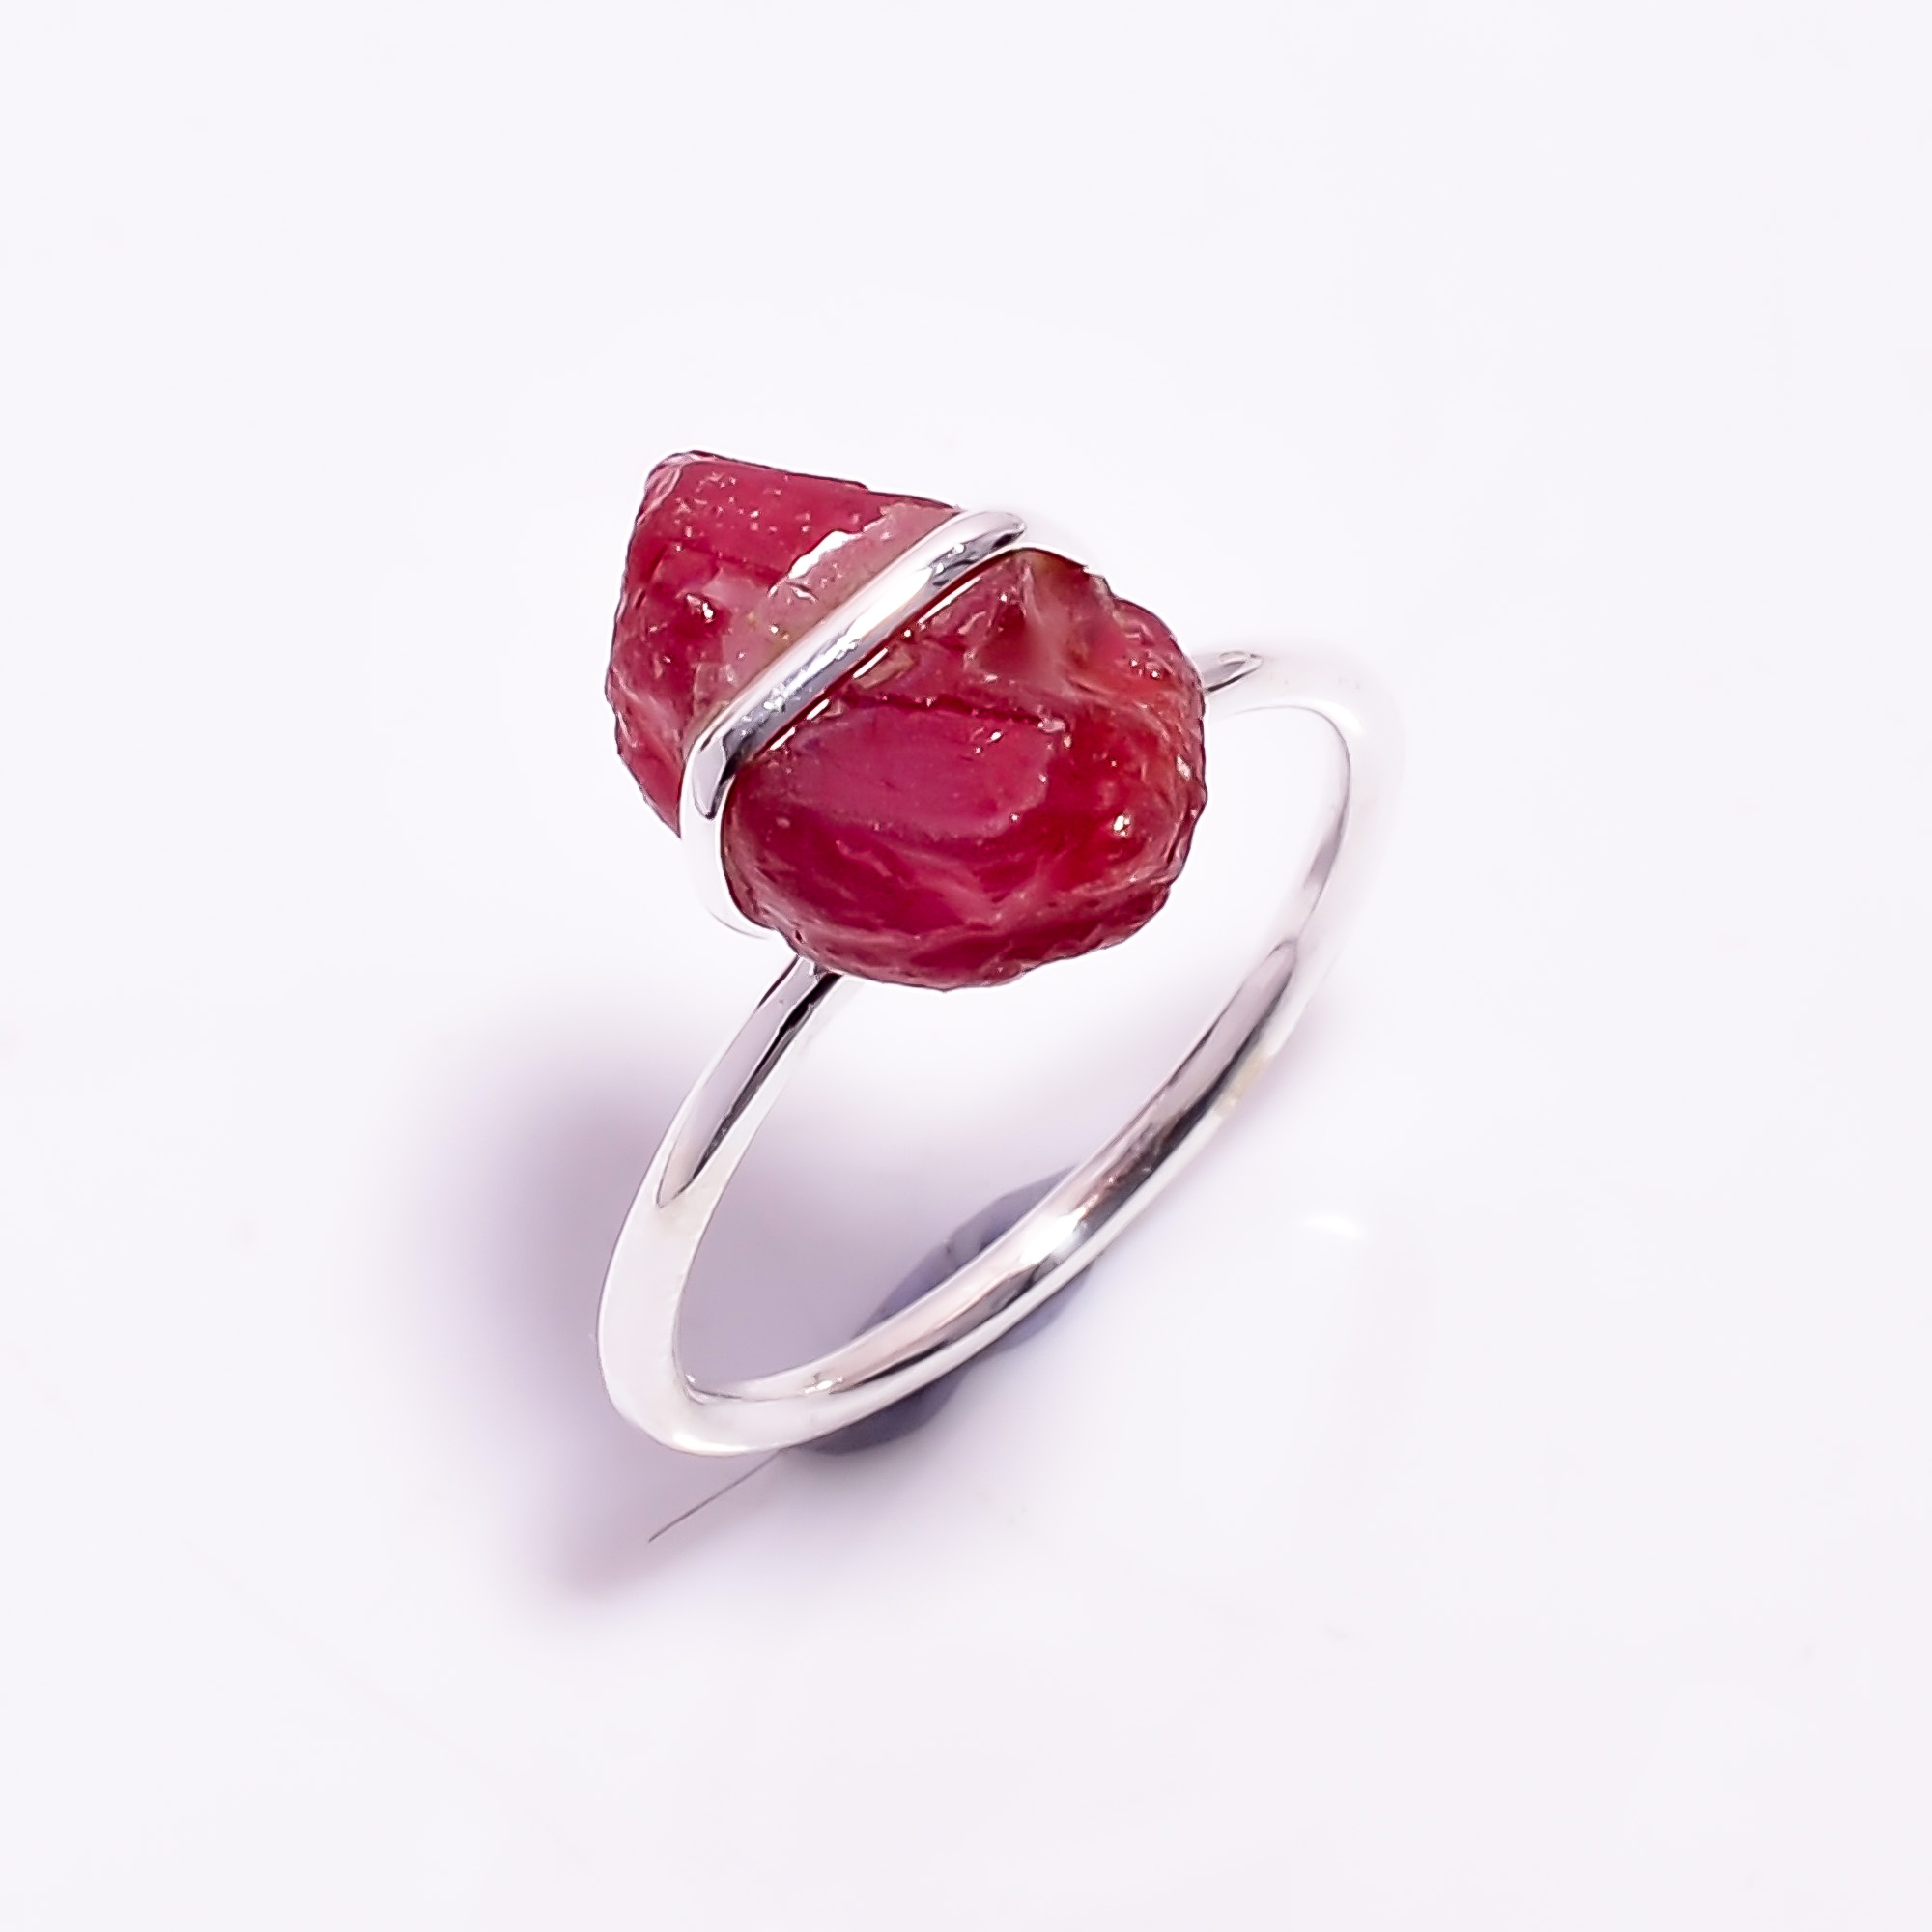 Ruby Raw Gemstone 925 Sterling Silver Ring Size US 7.25